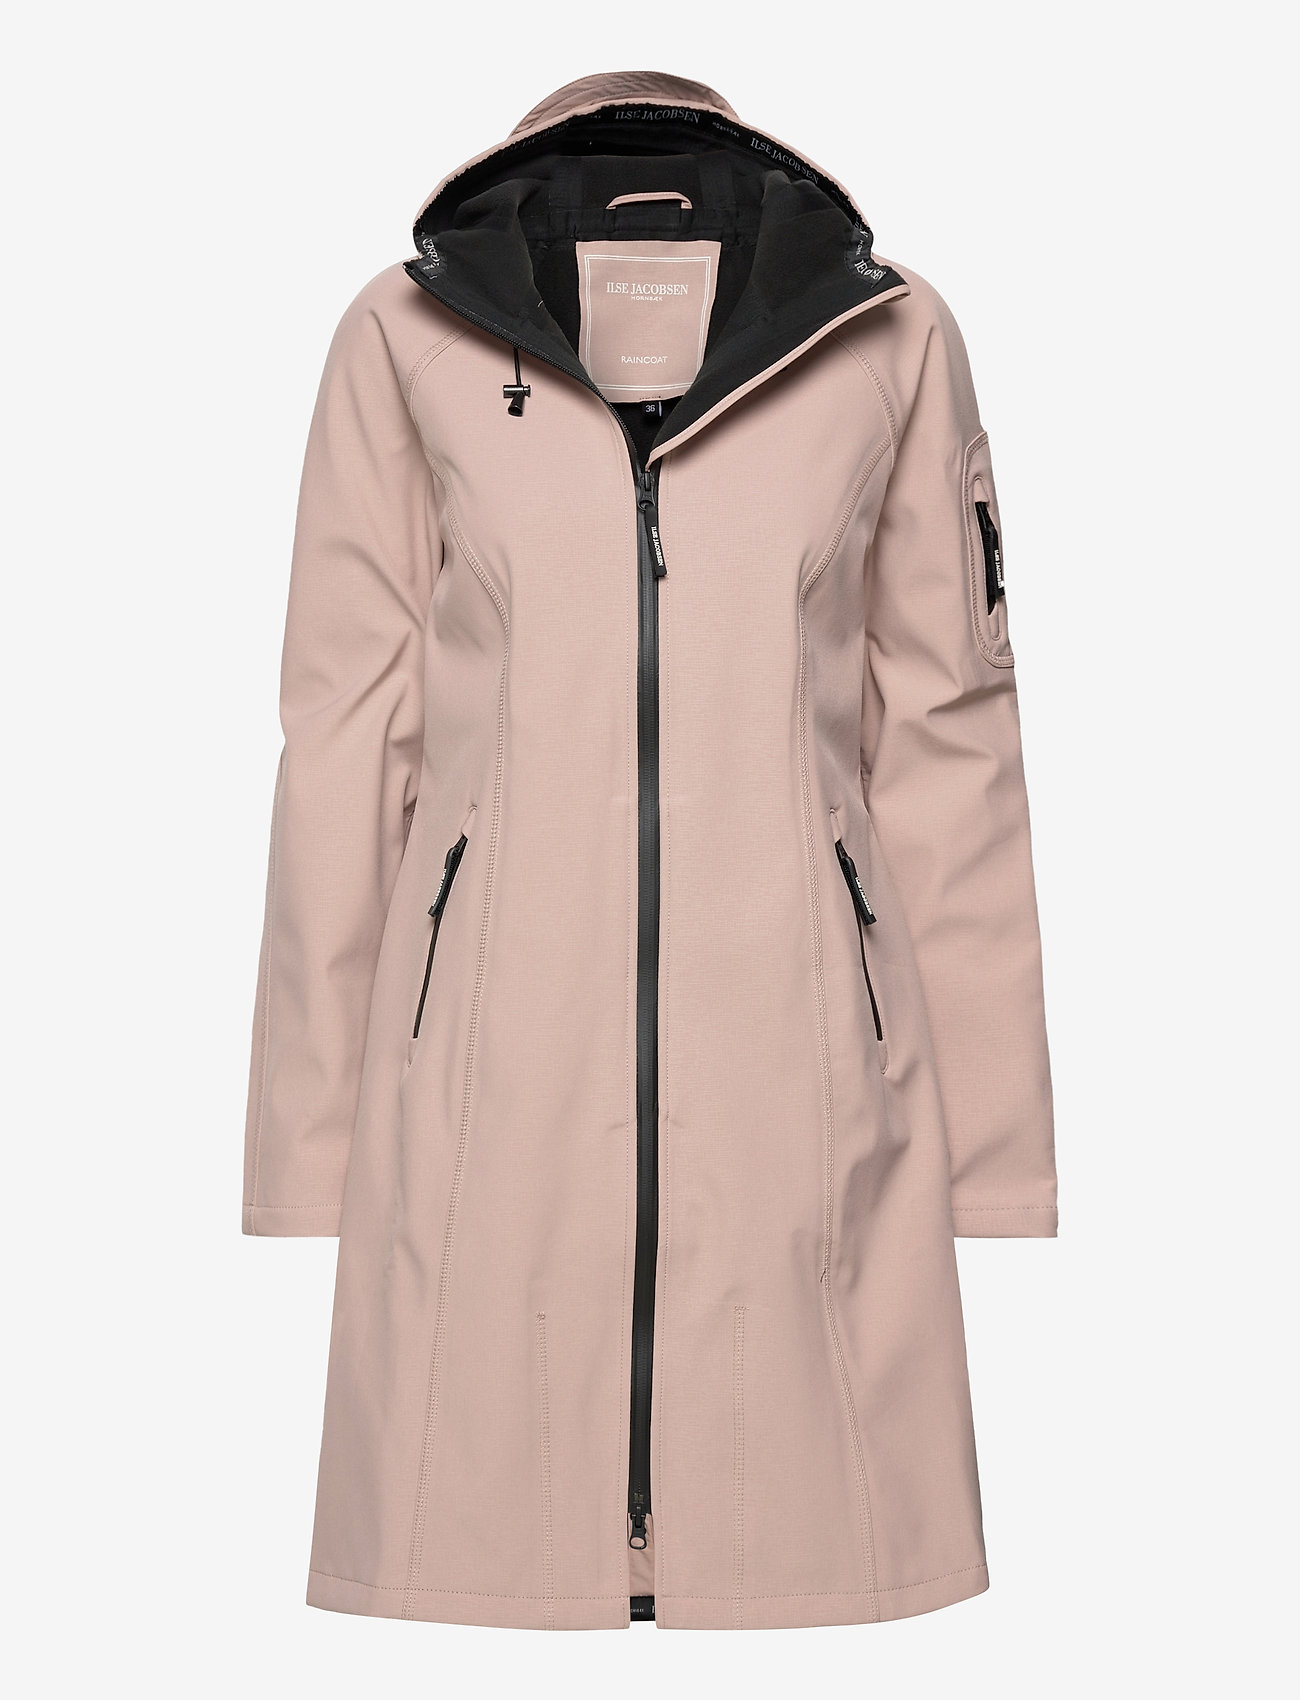 Ilse Jacobsen - LONG RAINCOAT - regnjakker - adobe rose - 0